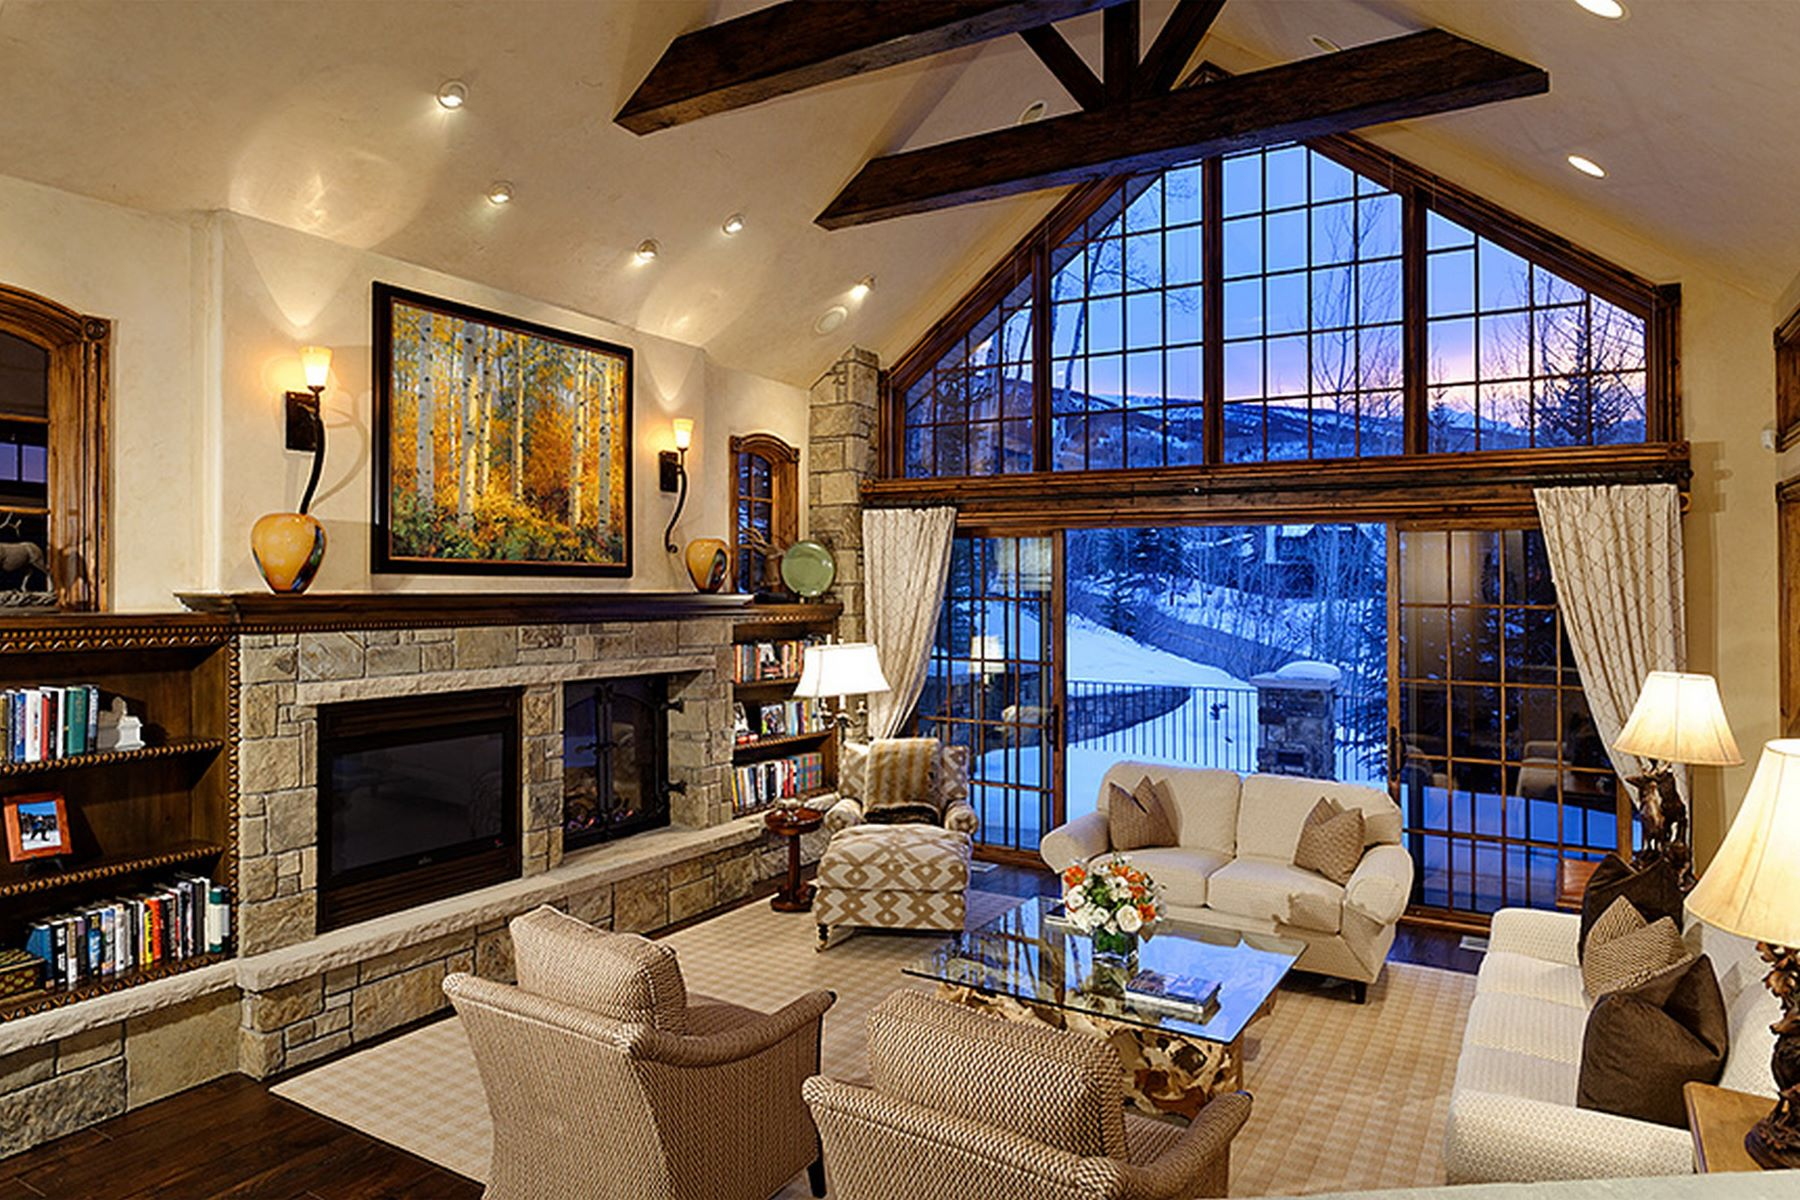 Single Family Home for Sale at Handsome Ski-In/Ski-Out Retreat 440 Spruce Ridge Lane, Snowmass Village, Colorado, 81615 United States